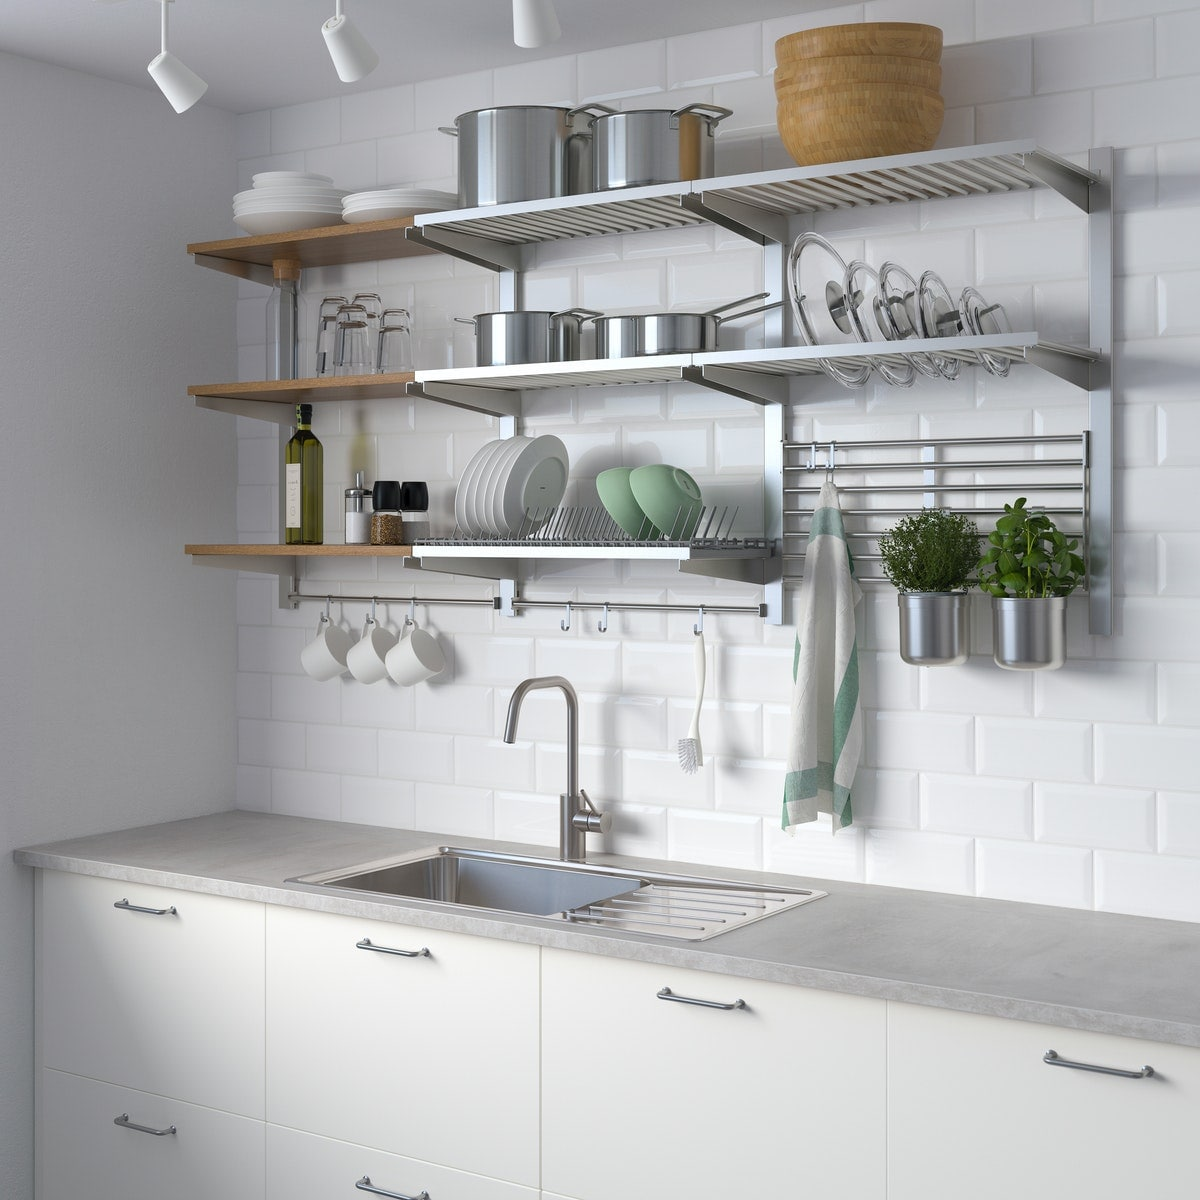 KUNGSFORS series displayed in a kitchen